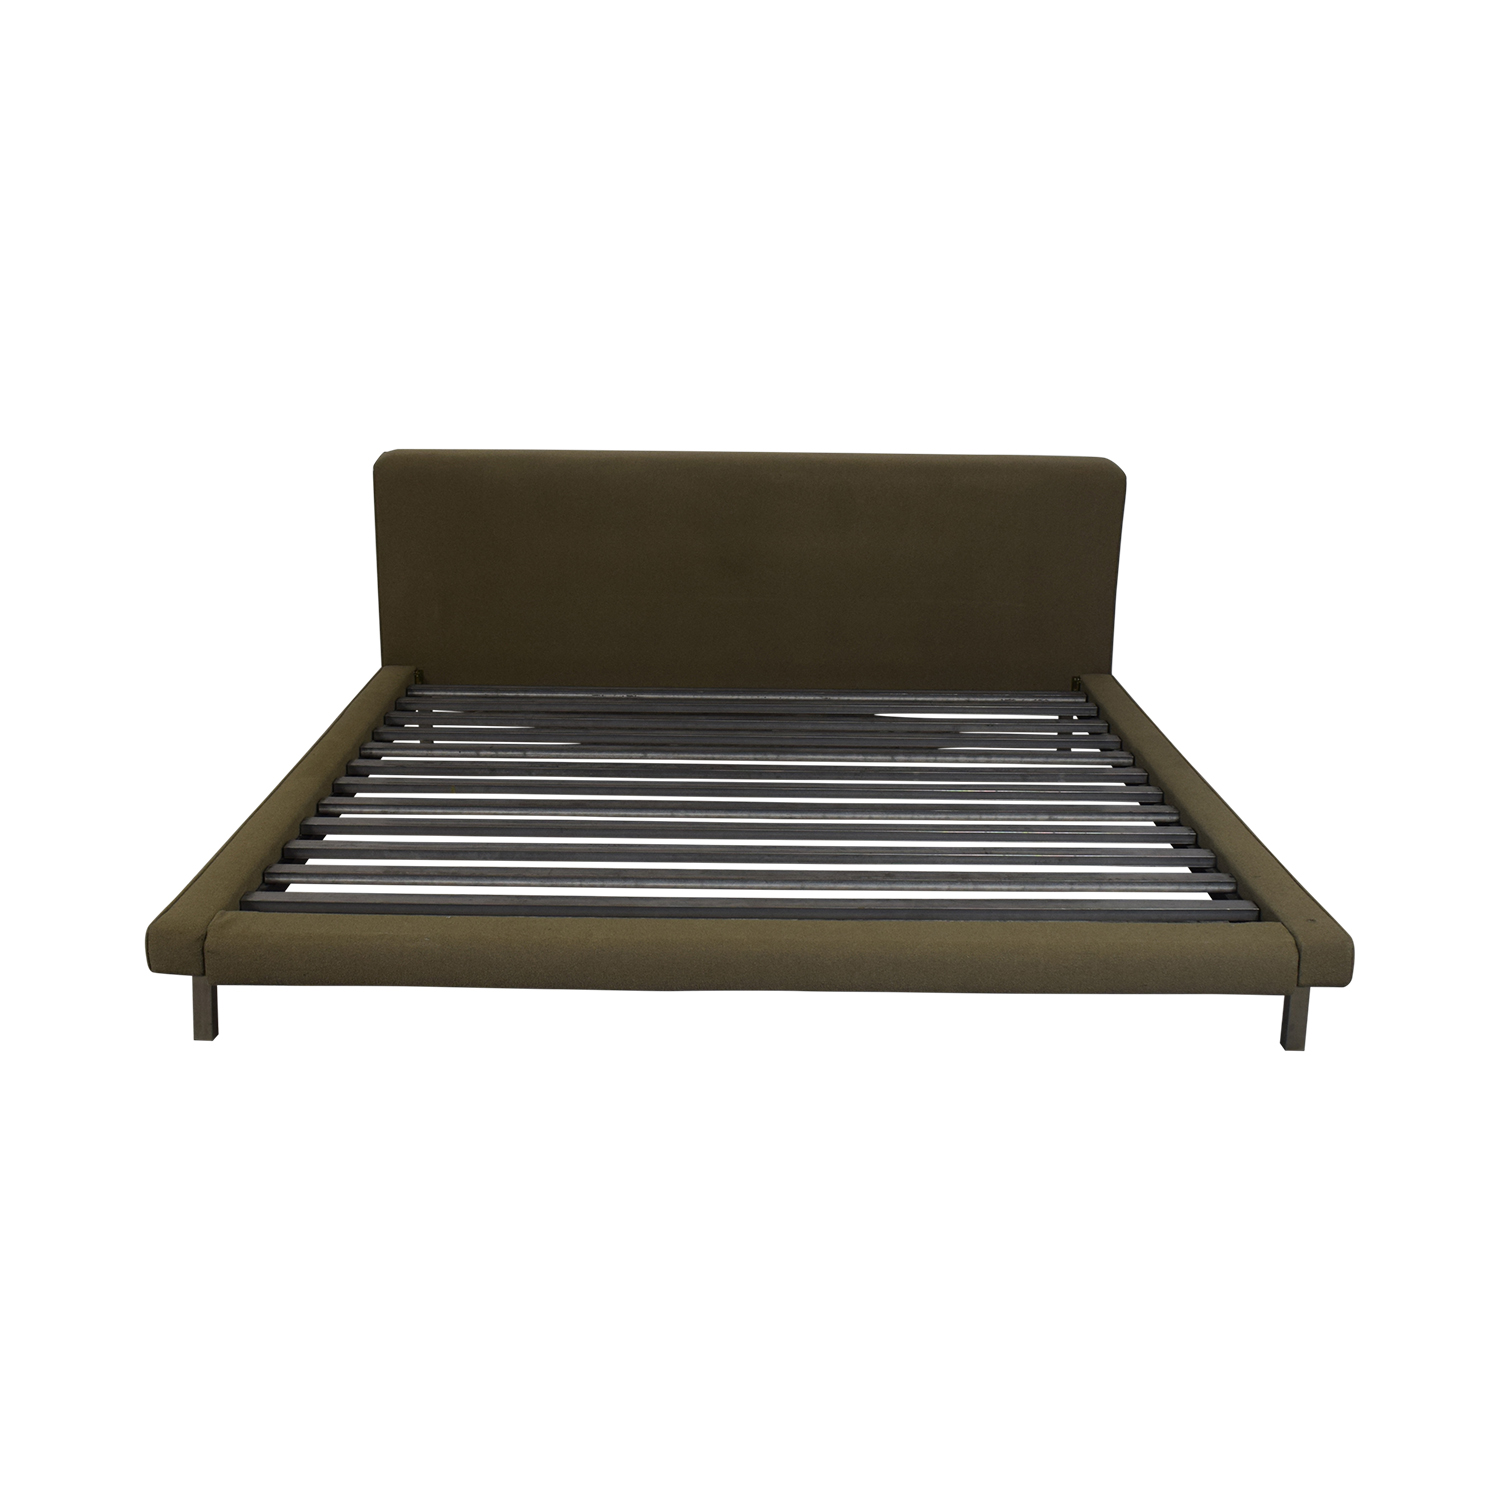 Room & Board Room & Board Upholstered Platform King Bed nj